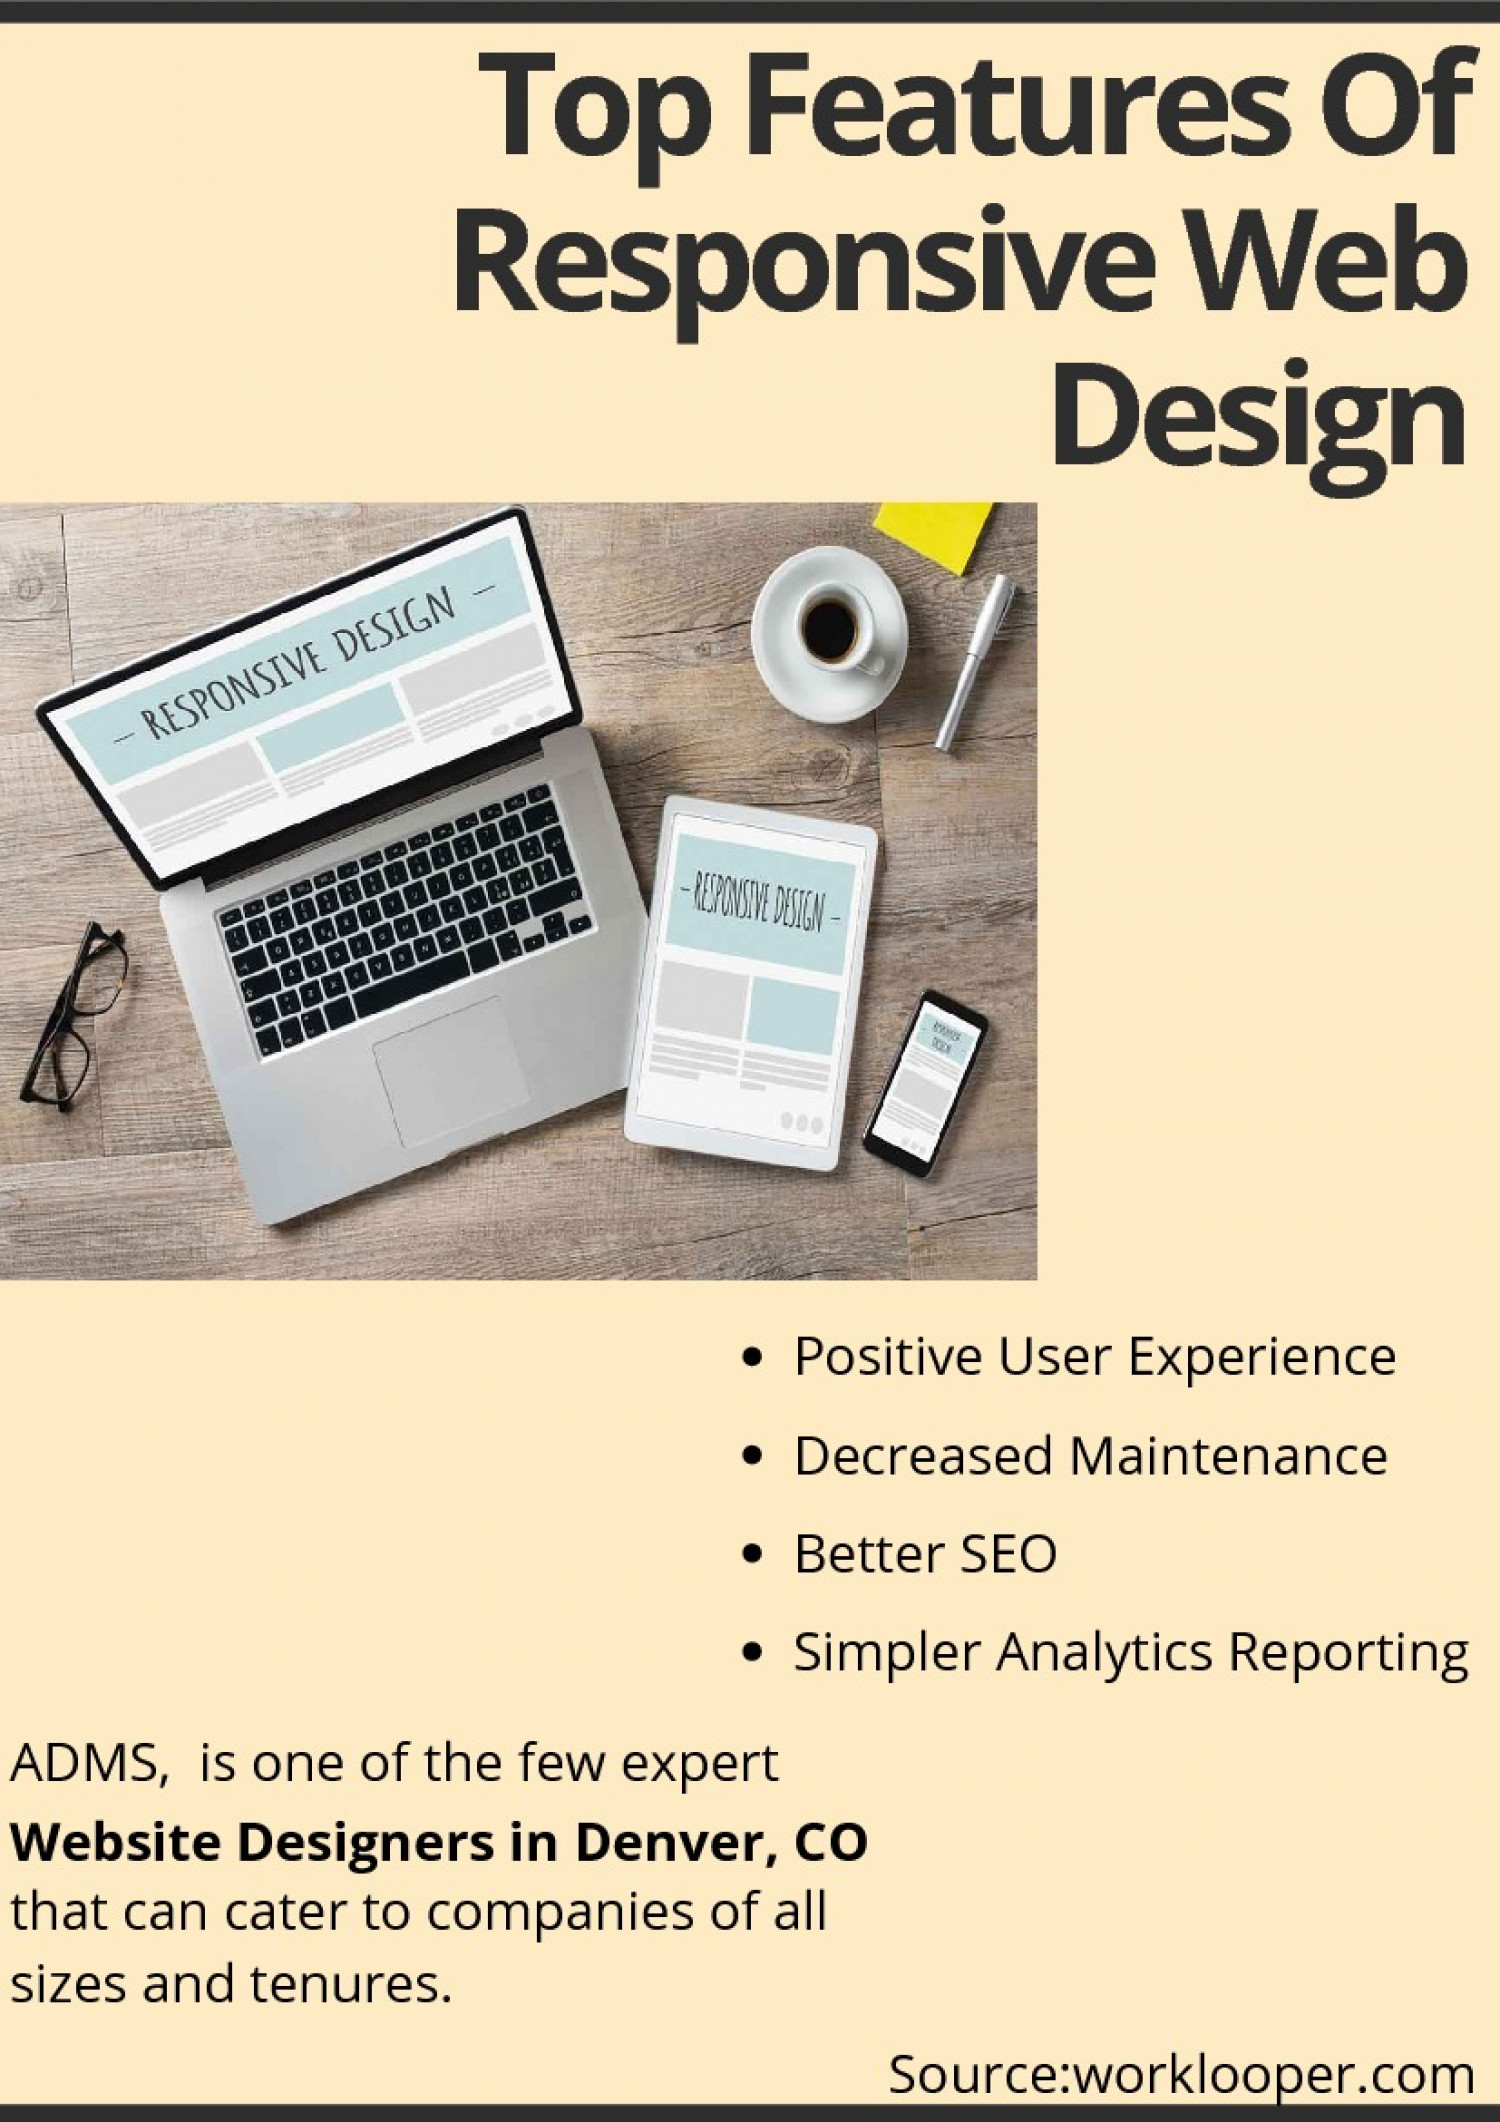 Top Features Of Responsive Web Design Infographic